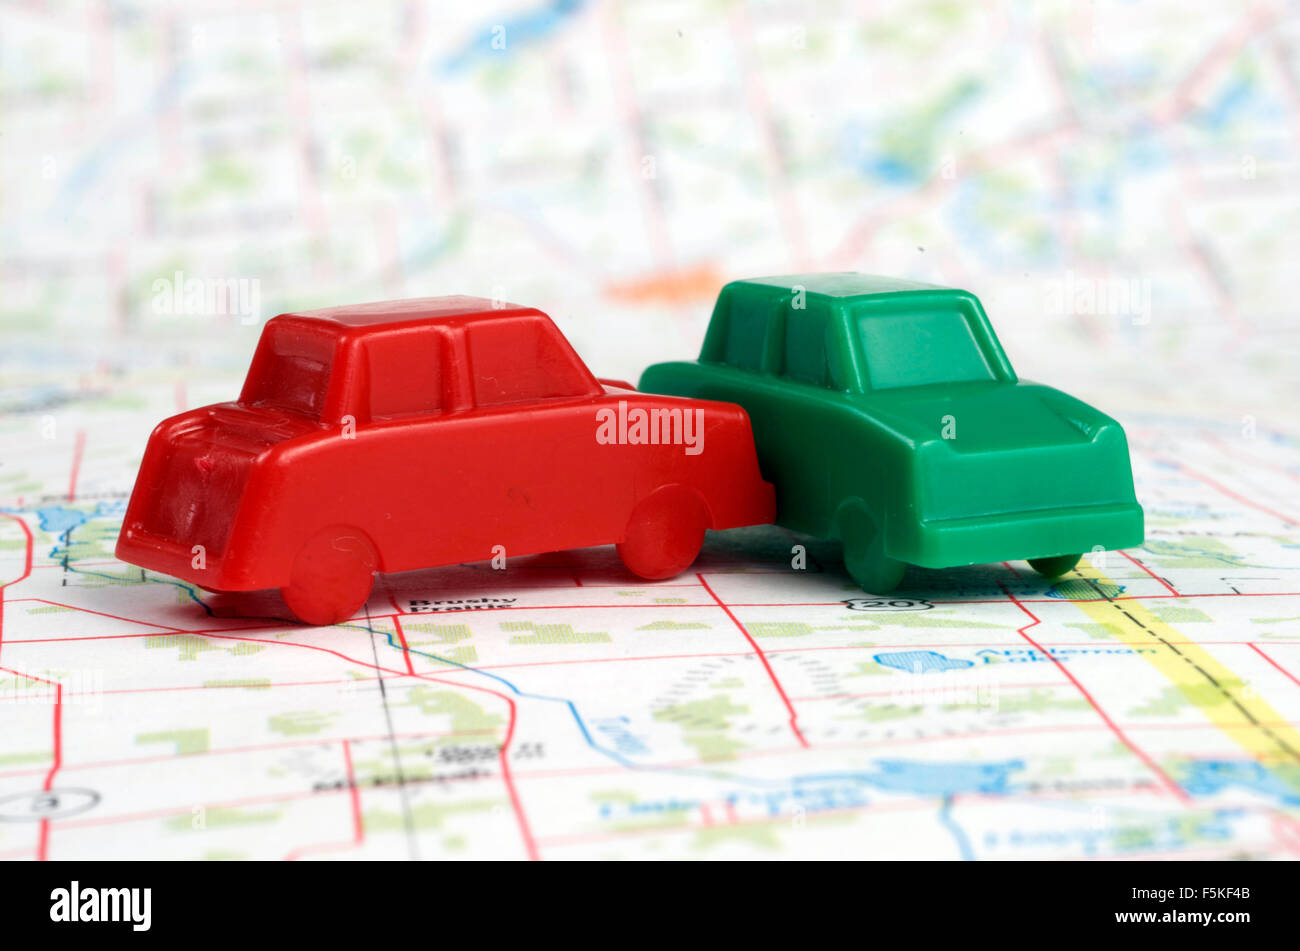 Collision of Two Plastic Play Cars On A Map - Stock Image